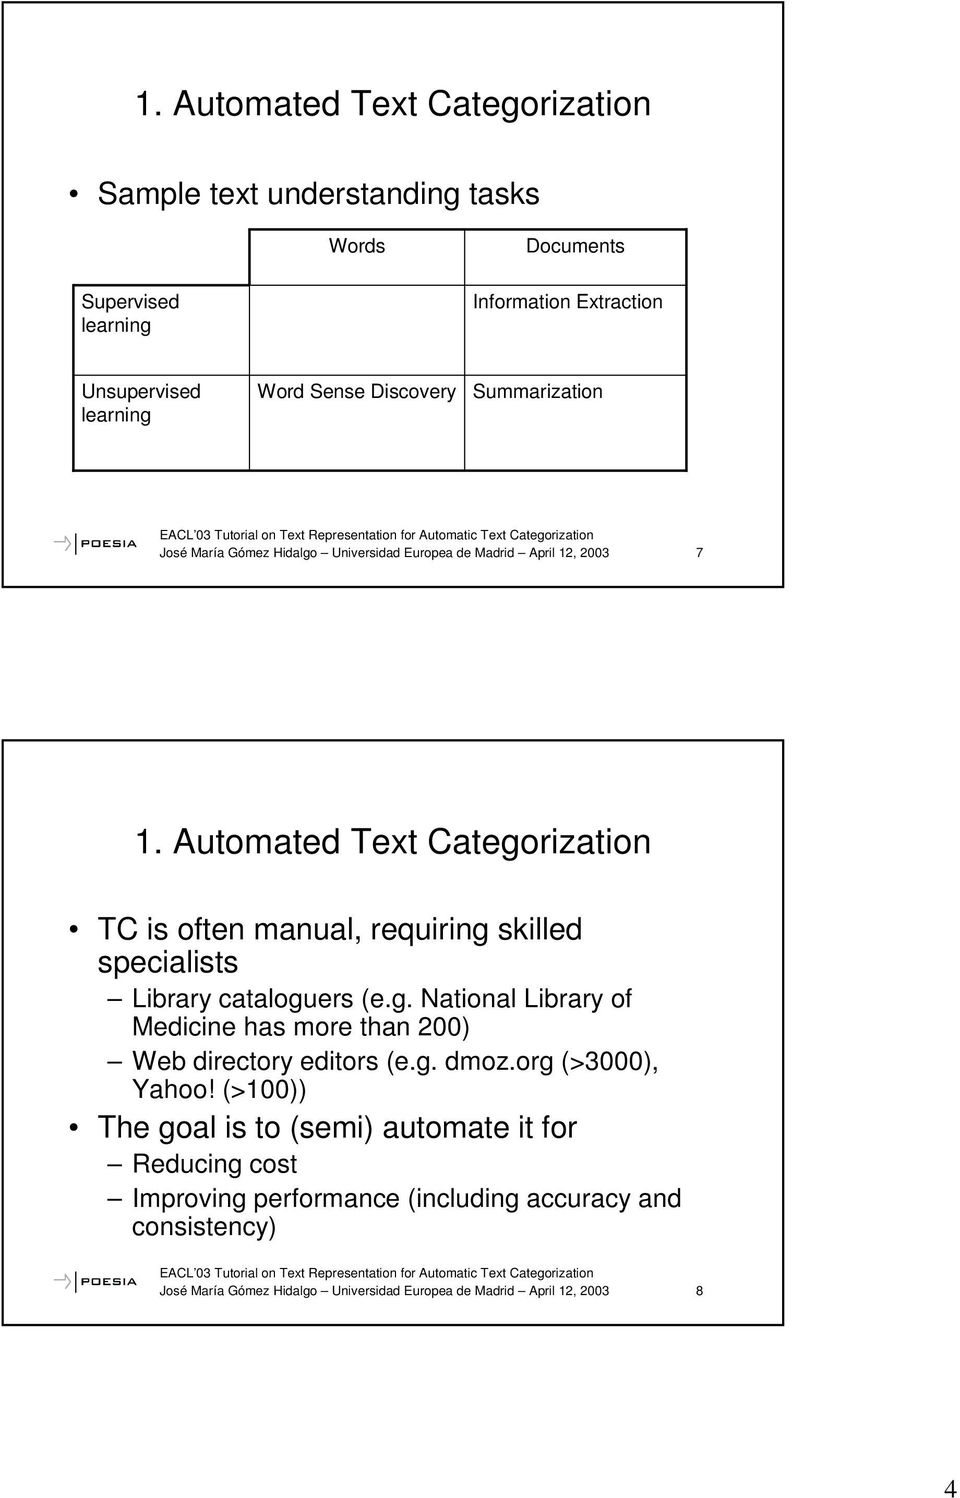 Automated Text Categorization TC is often manual, requiring skilled specialists Library cataloguers (e.g. National Library of Medicine has more than 200) Web directory editors (e.